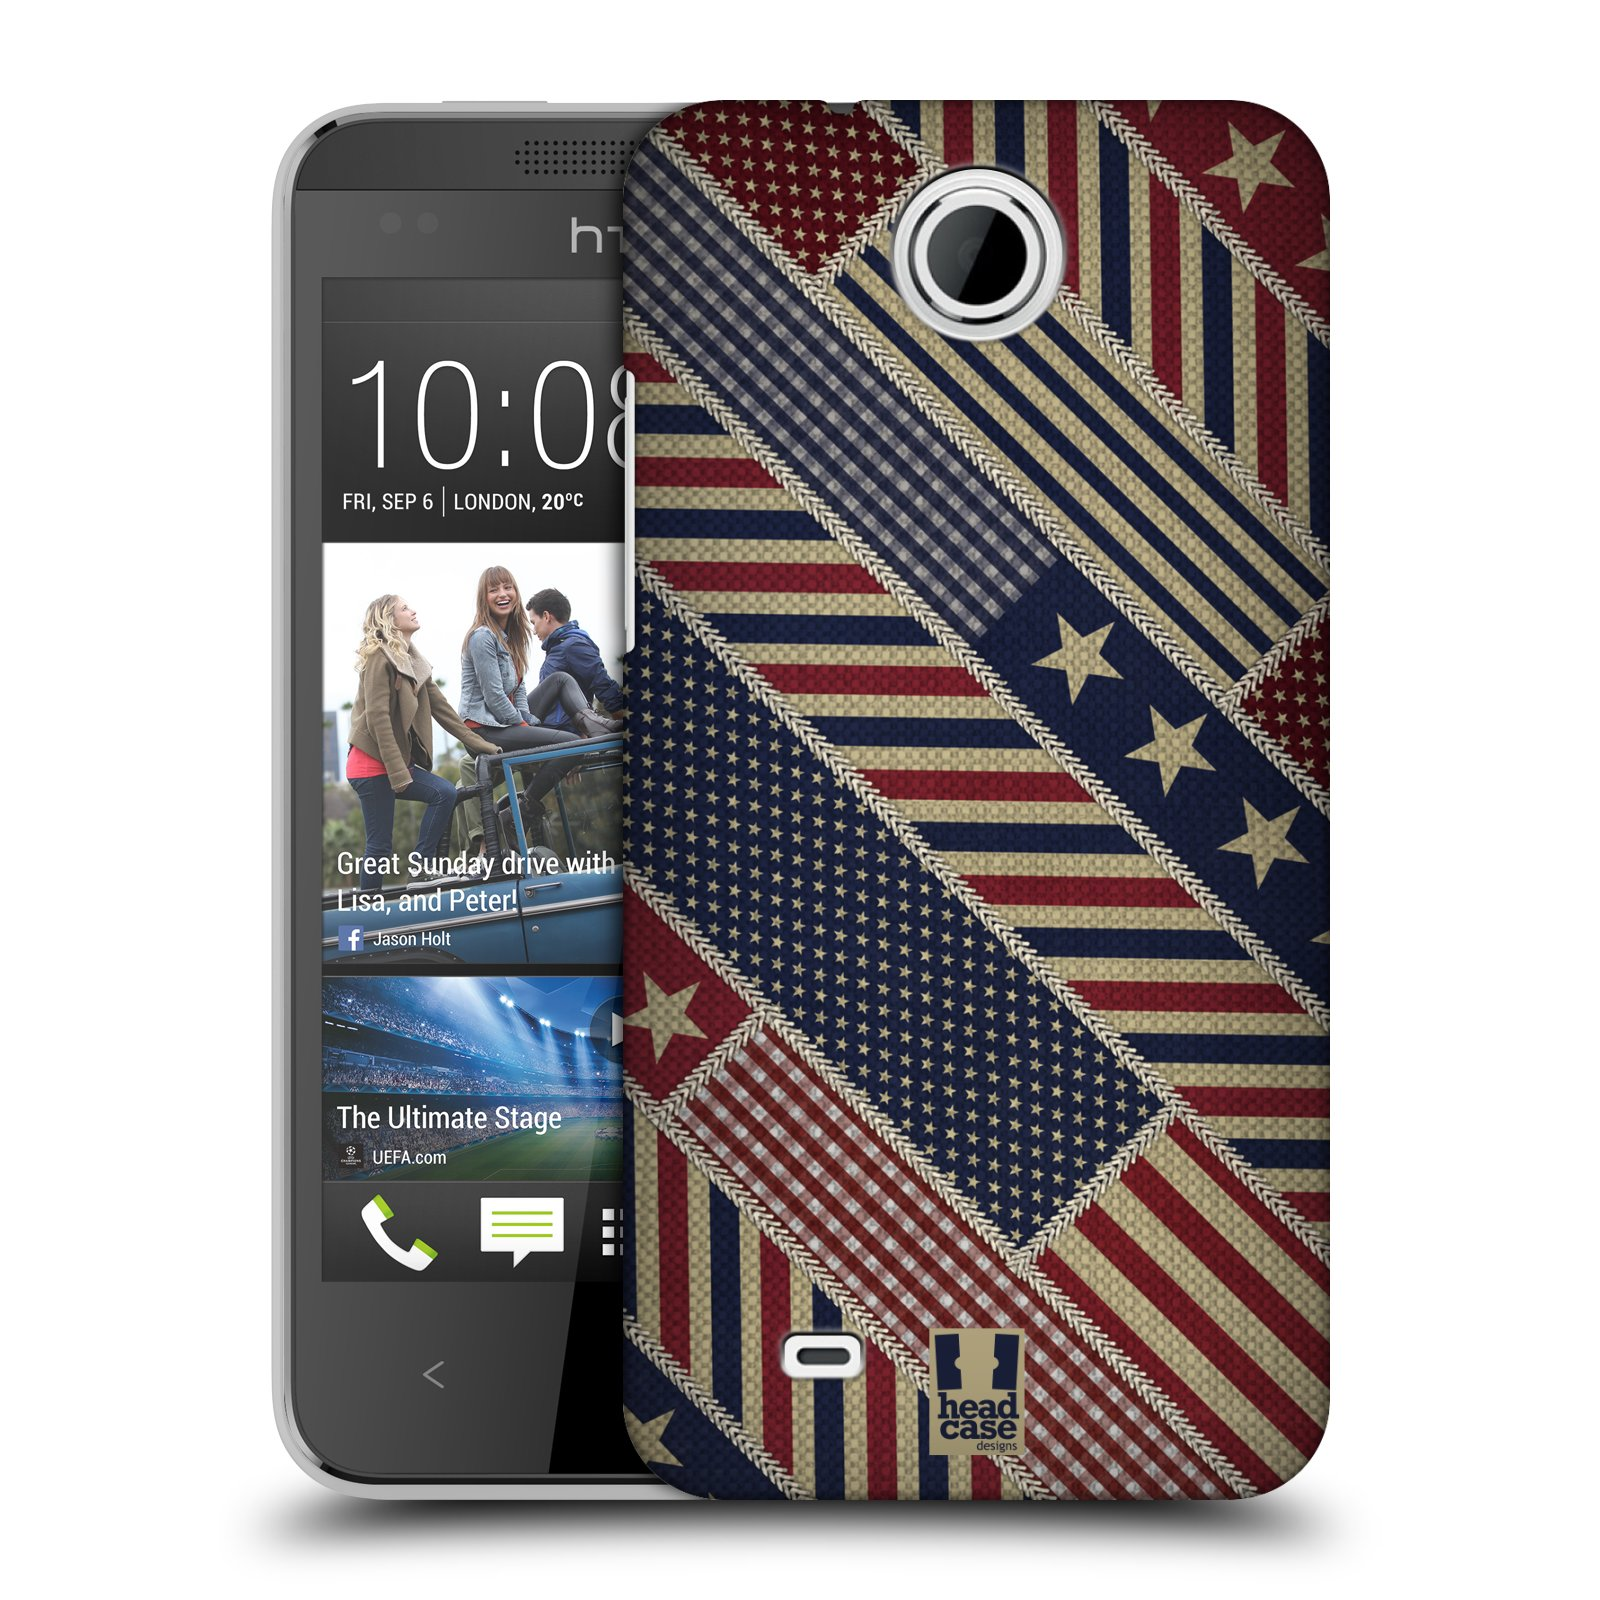 Details about HEAD CASE DESIGNS STARS AND STRIPES COLLECTION USA BACK ...